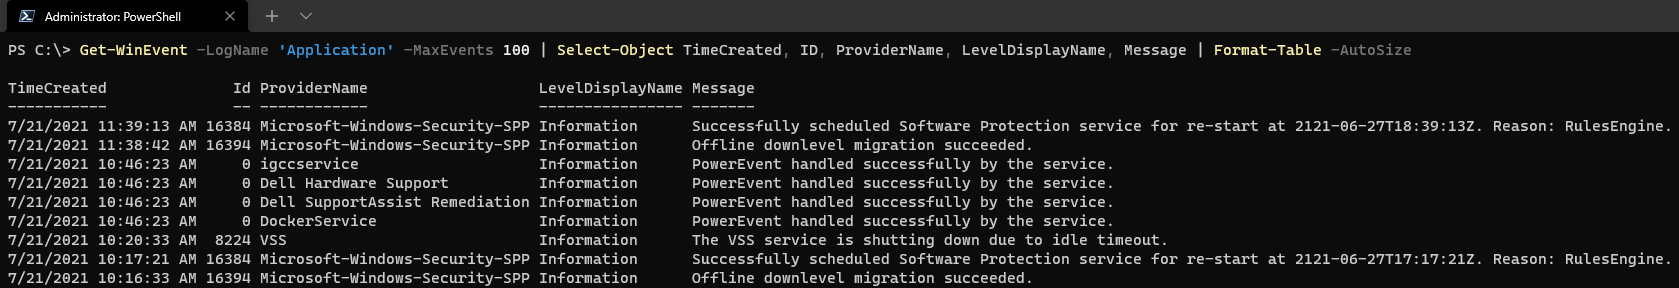 Returning events from the Application log.